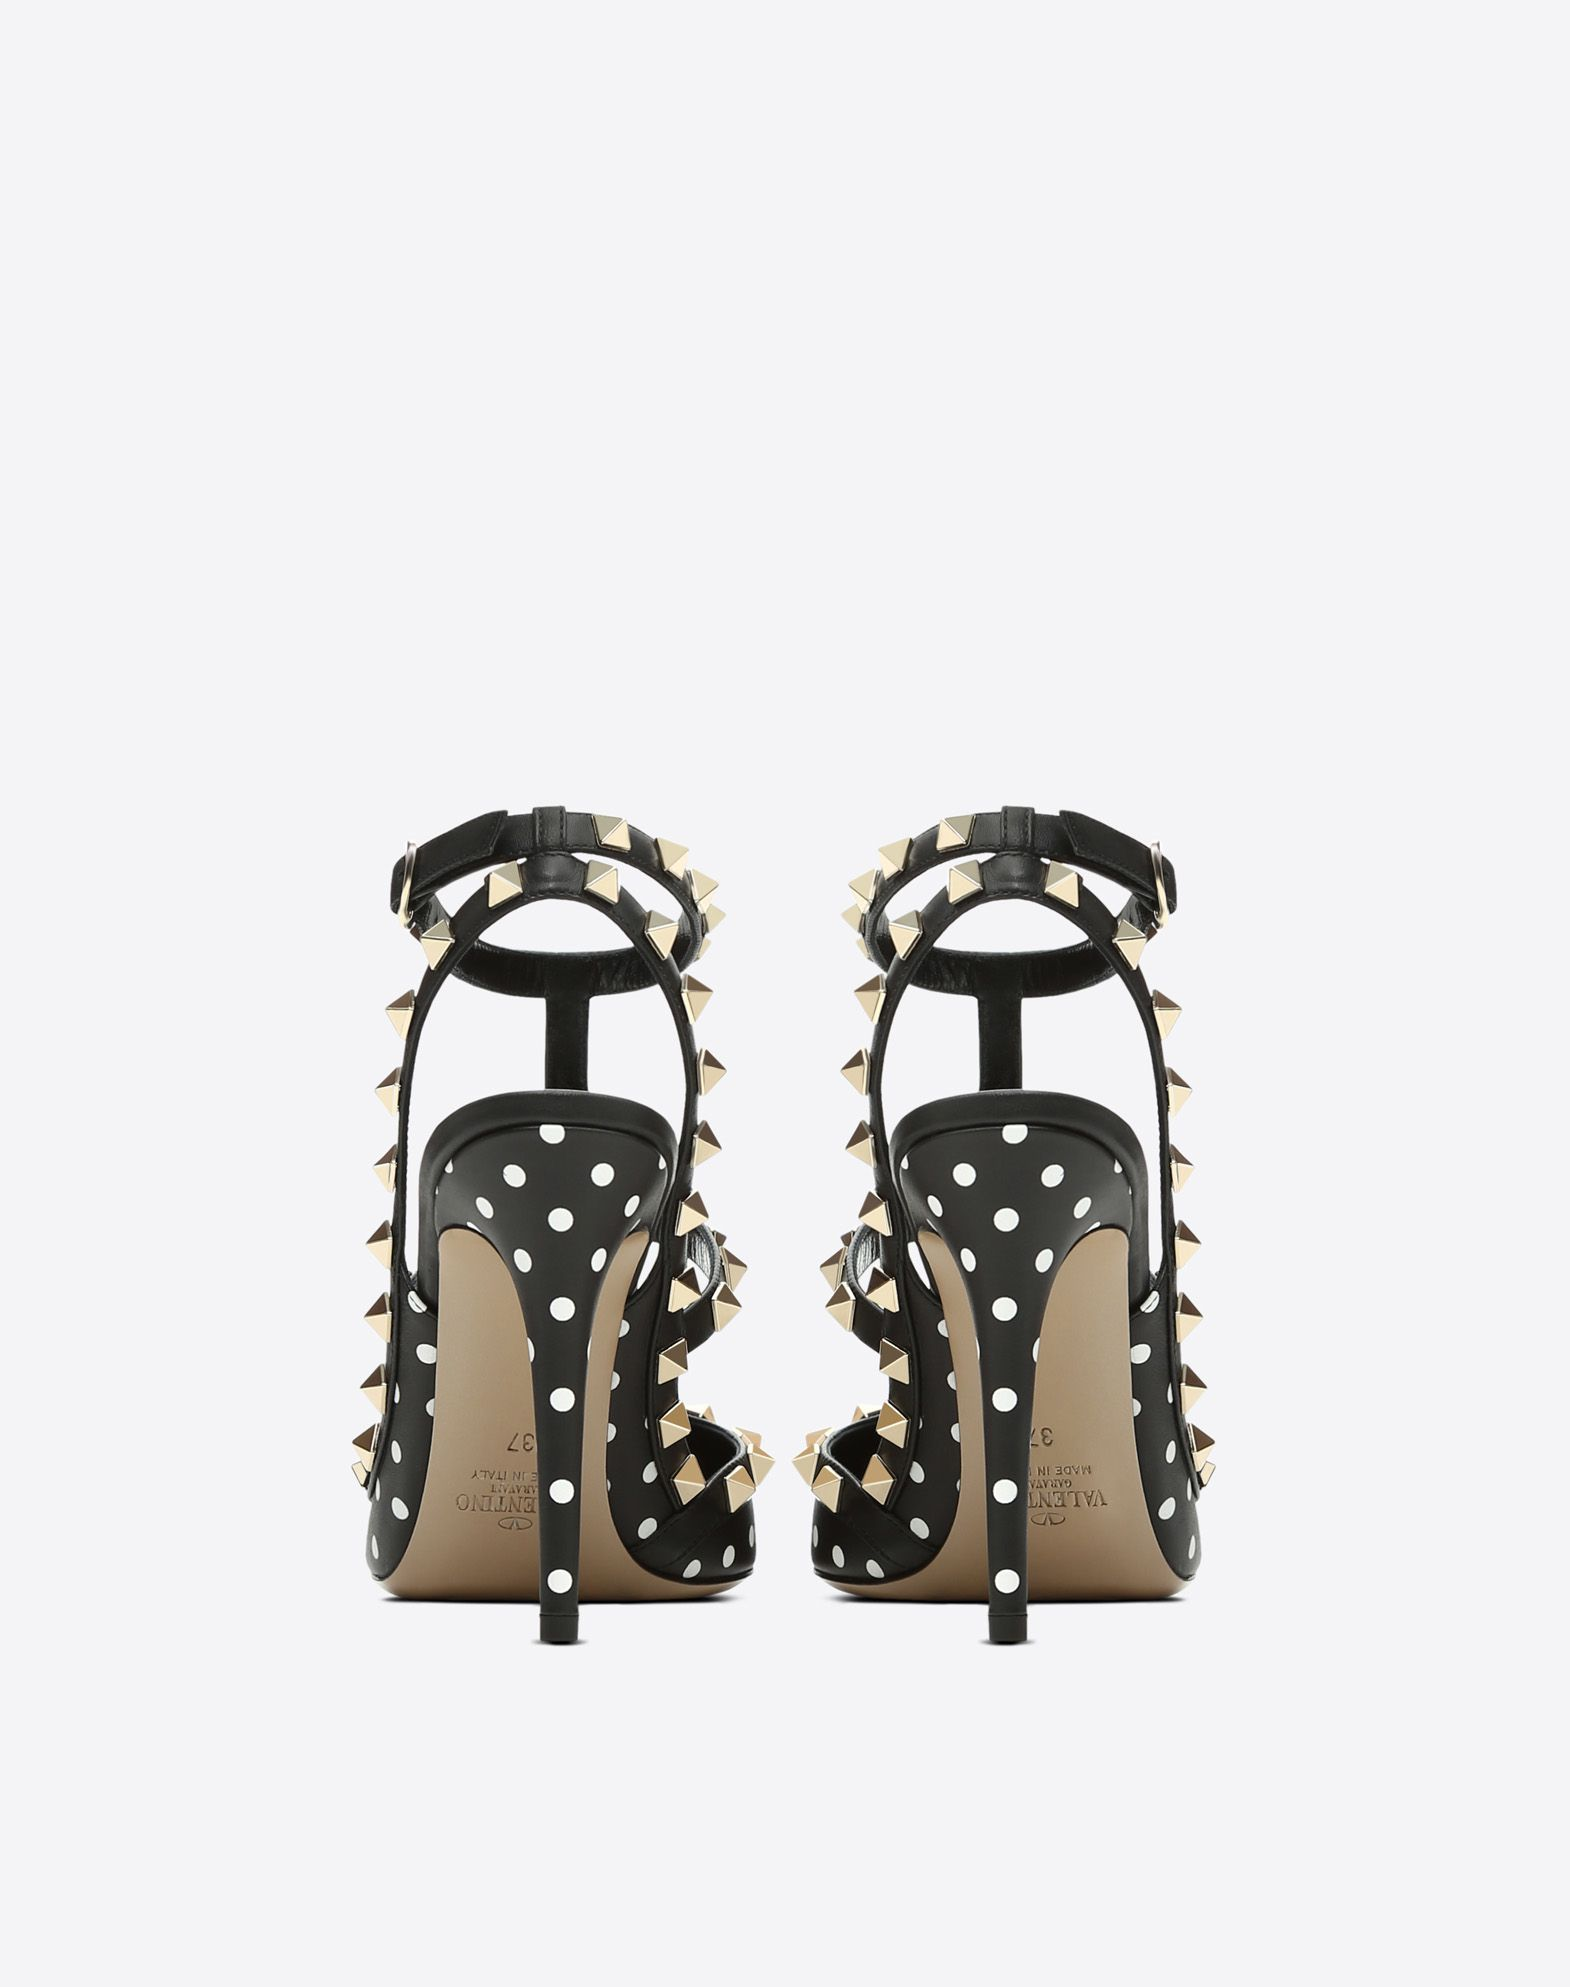 VALENTINO Studs Stiletto heel Polka dots Buckling ankle strap closure Narrow toeline Leather lining Leather sole  11470553qb